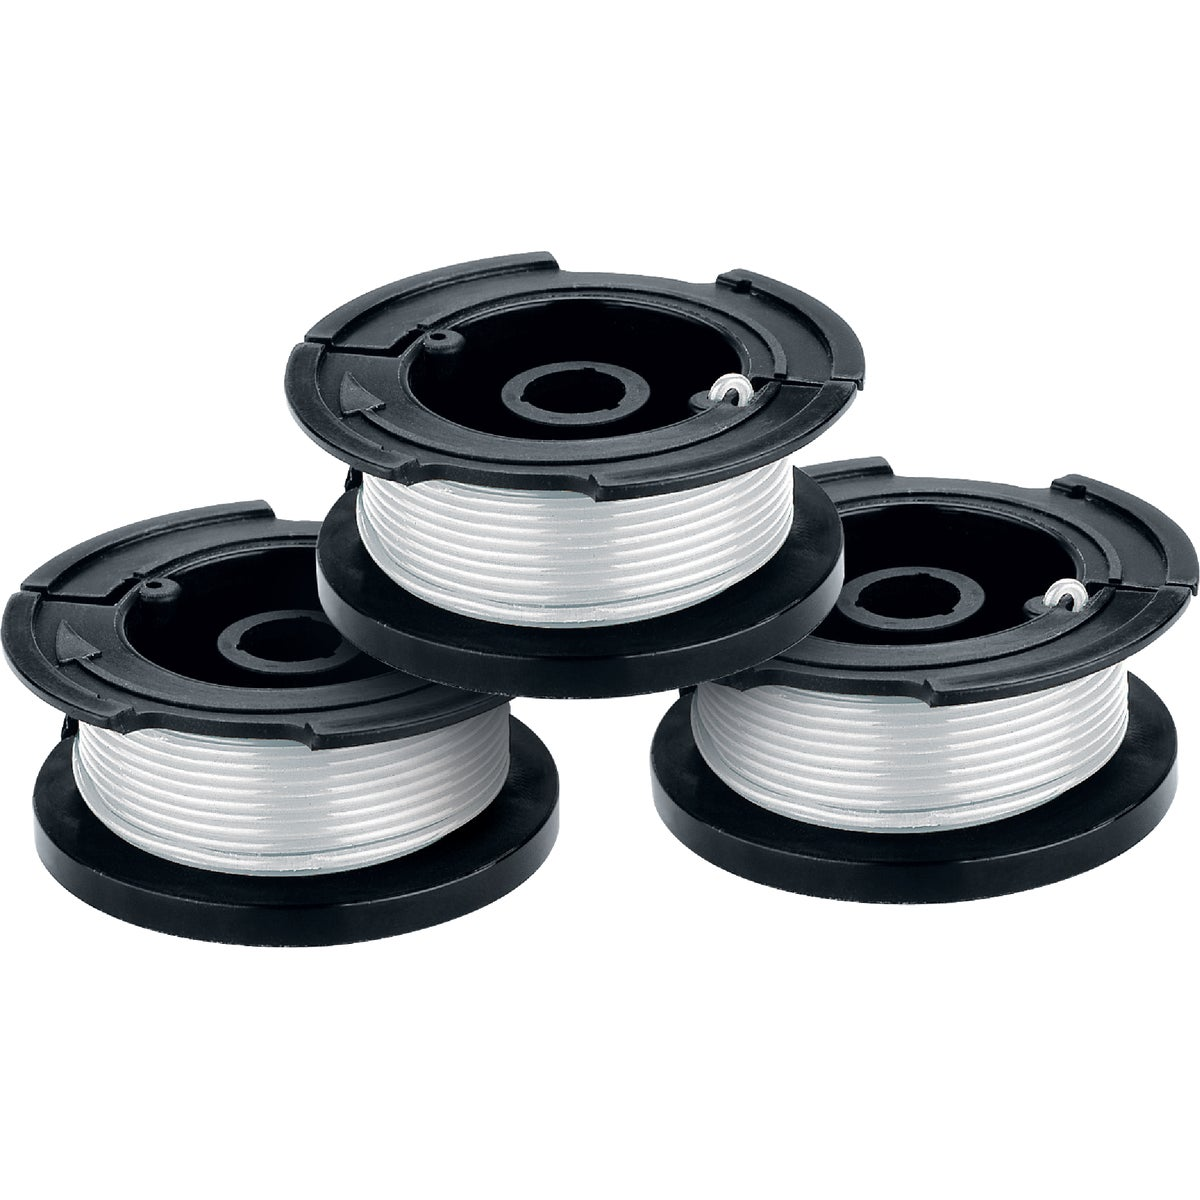 3 PACK TRIMMER SPOOLS - AF-100-3ZP by Black & Decker